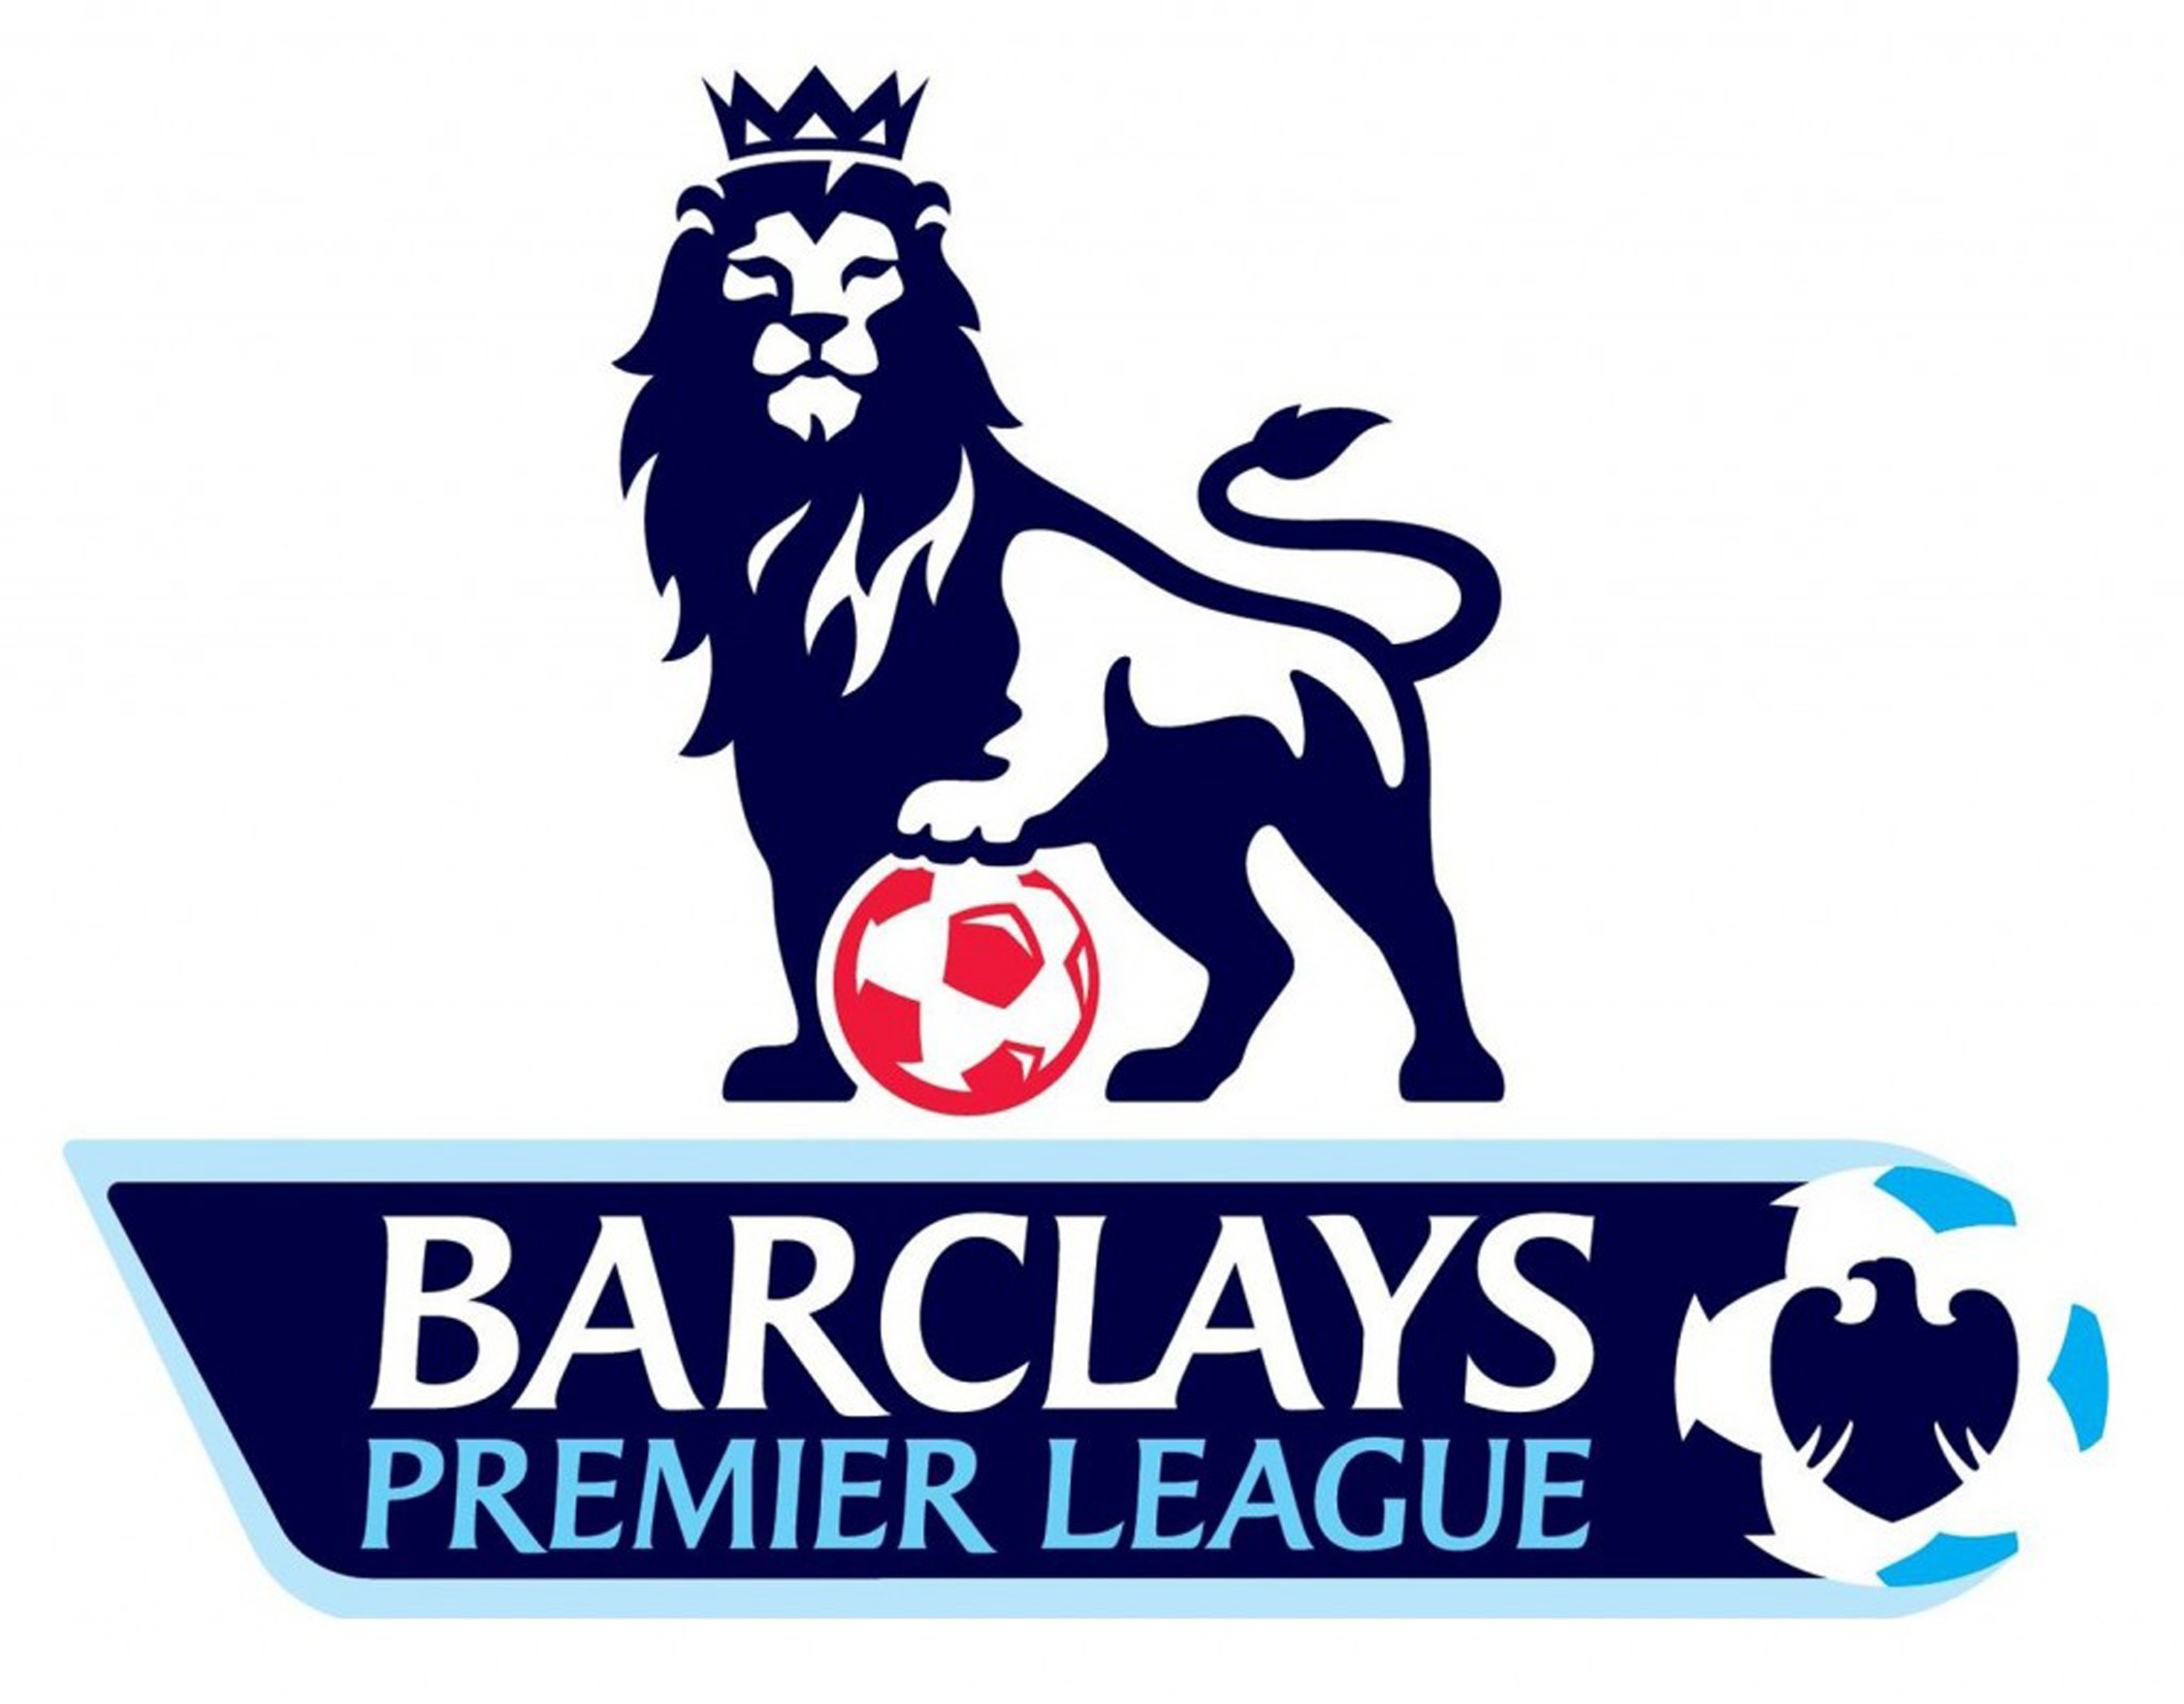 old premier league logo